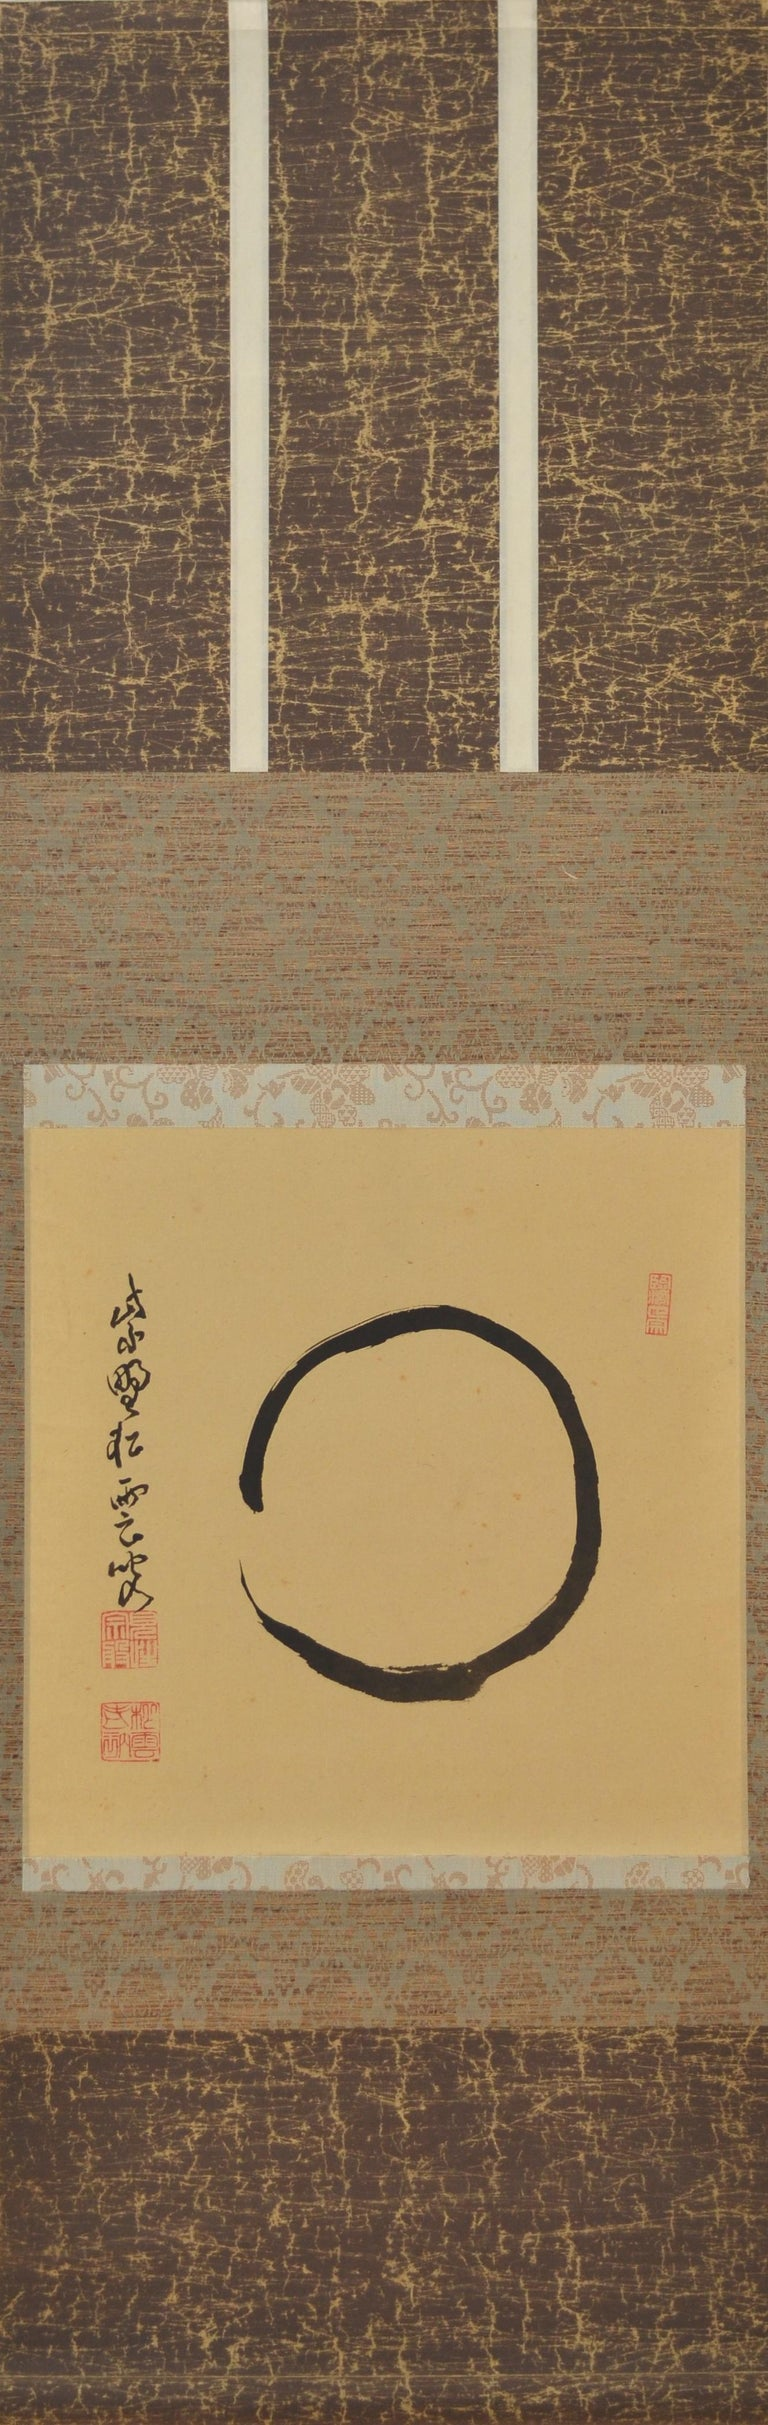 A very delicate, unusual thin Enso painting from the brush of the 468th Daitoku-ji temple's head monk Shuhan Genpo (1848-1922), who is often found under the name Sohan Genpo in english transscriptions. Shuhan Genpo has been 468th head monk of